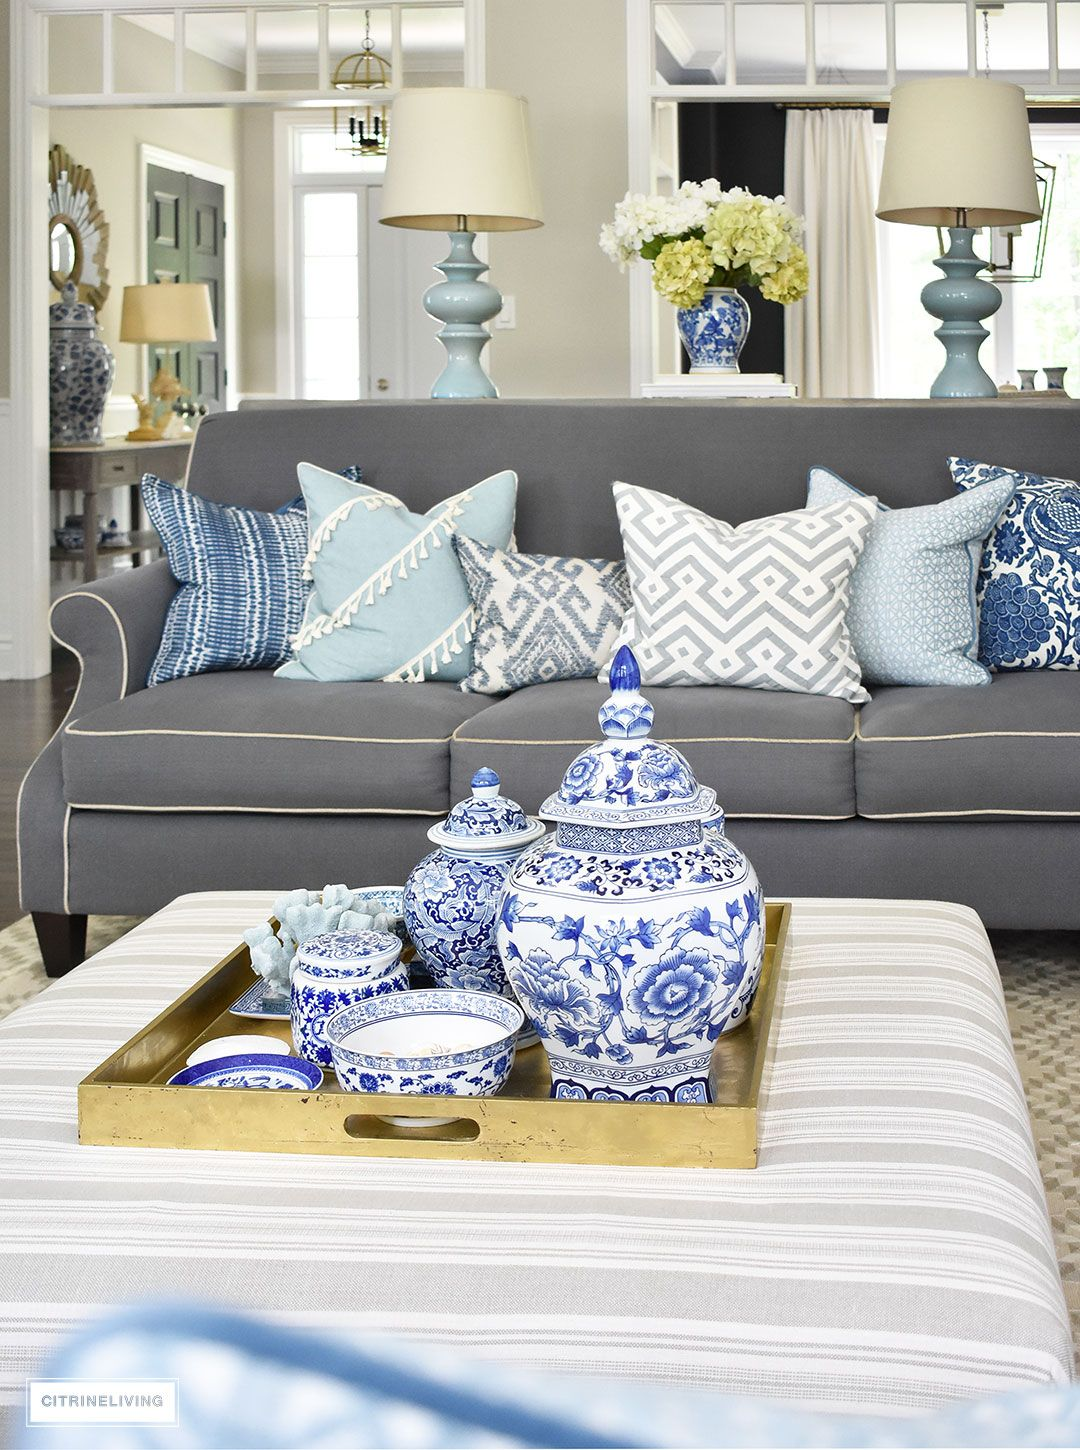 Style A Coffee Table Or Ottoman 3 Ways Citrineliving Blue Living Room Ottoman Coffee Table Blue White Decor [ 1450 x 1080 Pixel ]